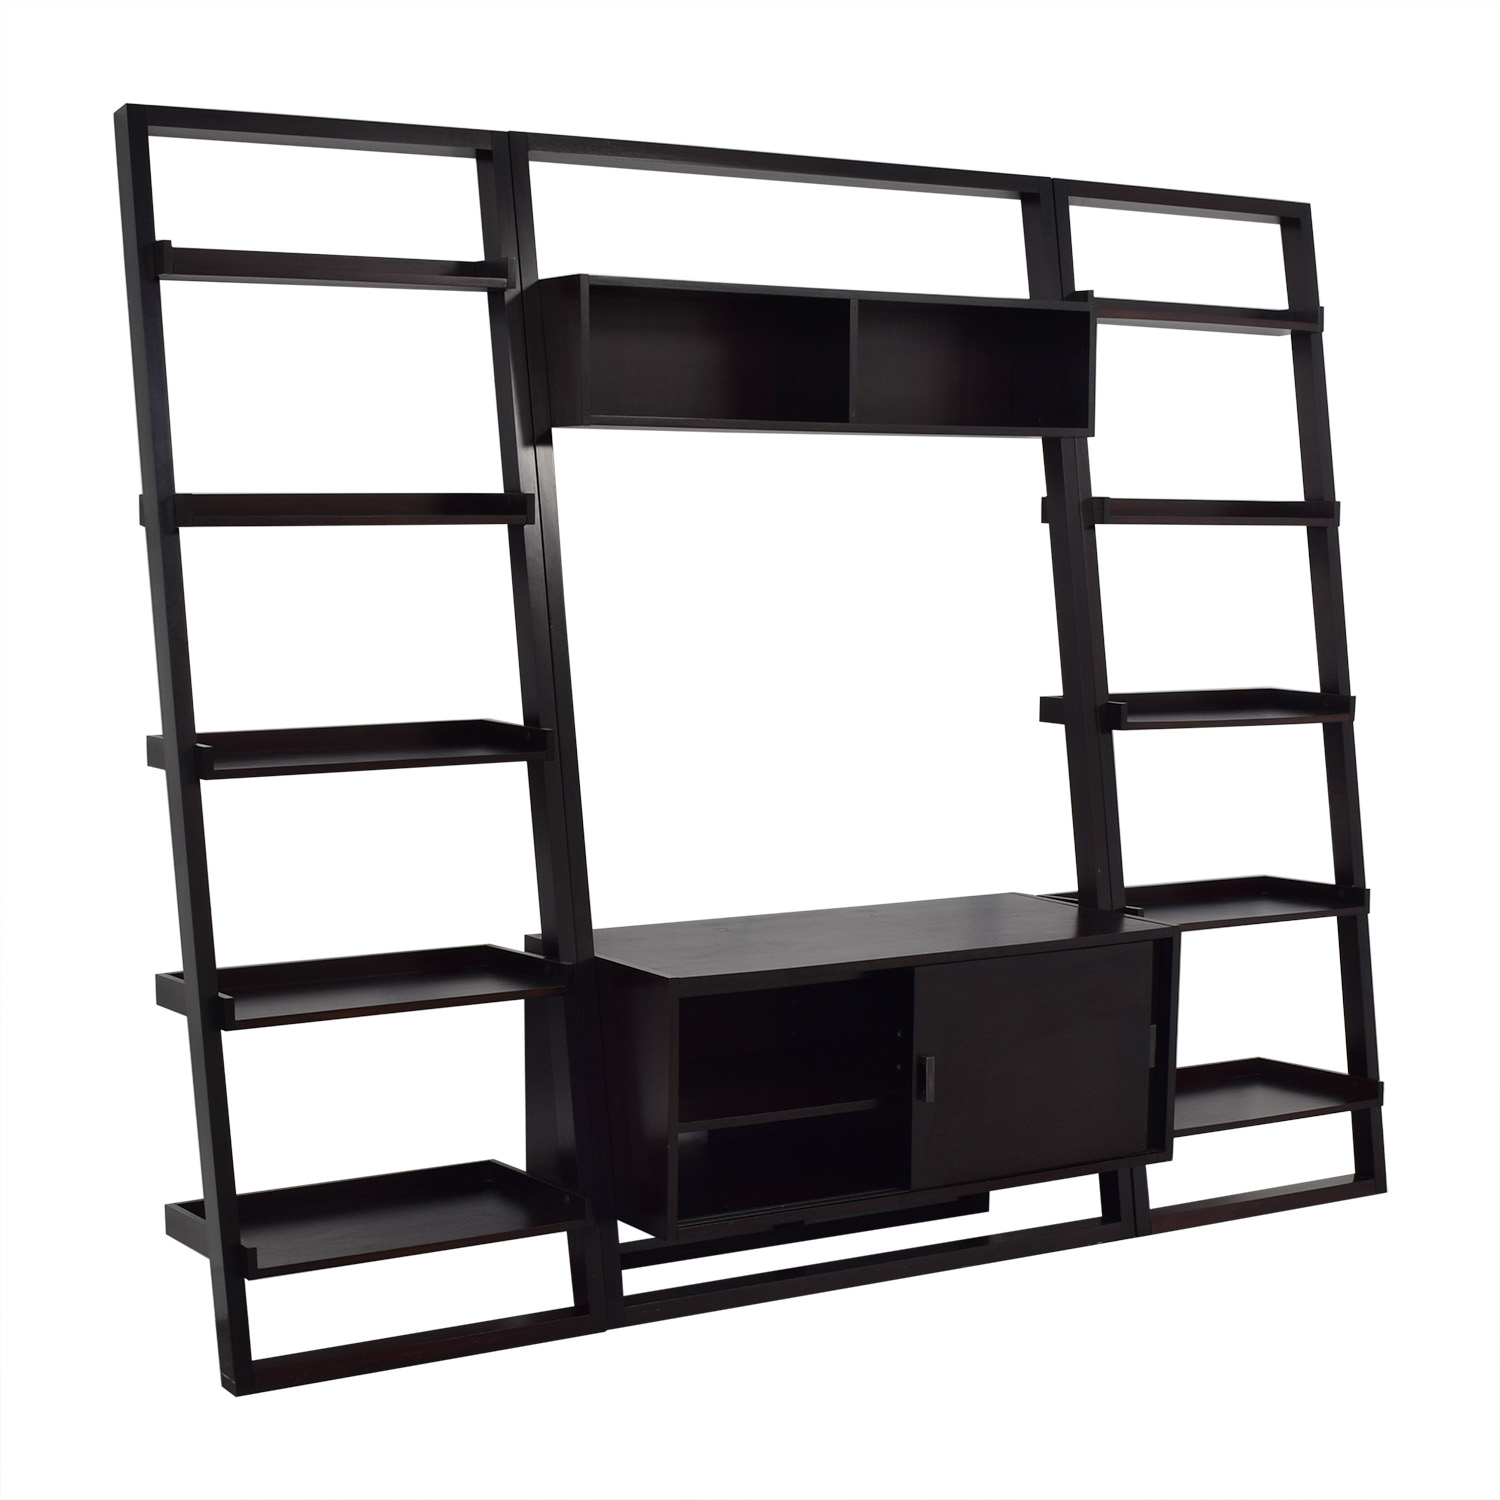 buy Crate & Barrel Crate & Barrel Sawyer Media Stand with Bookcases online